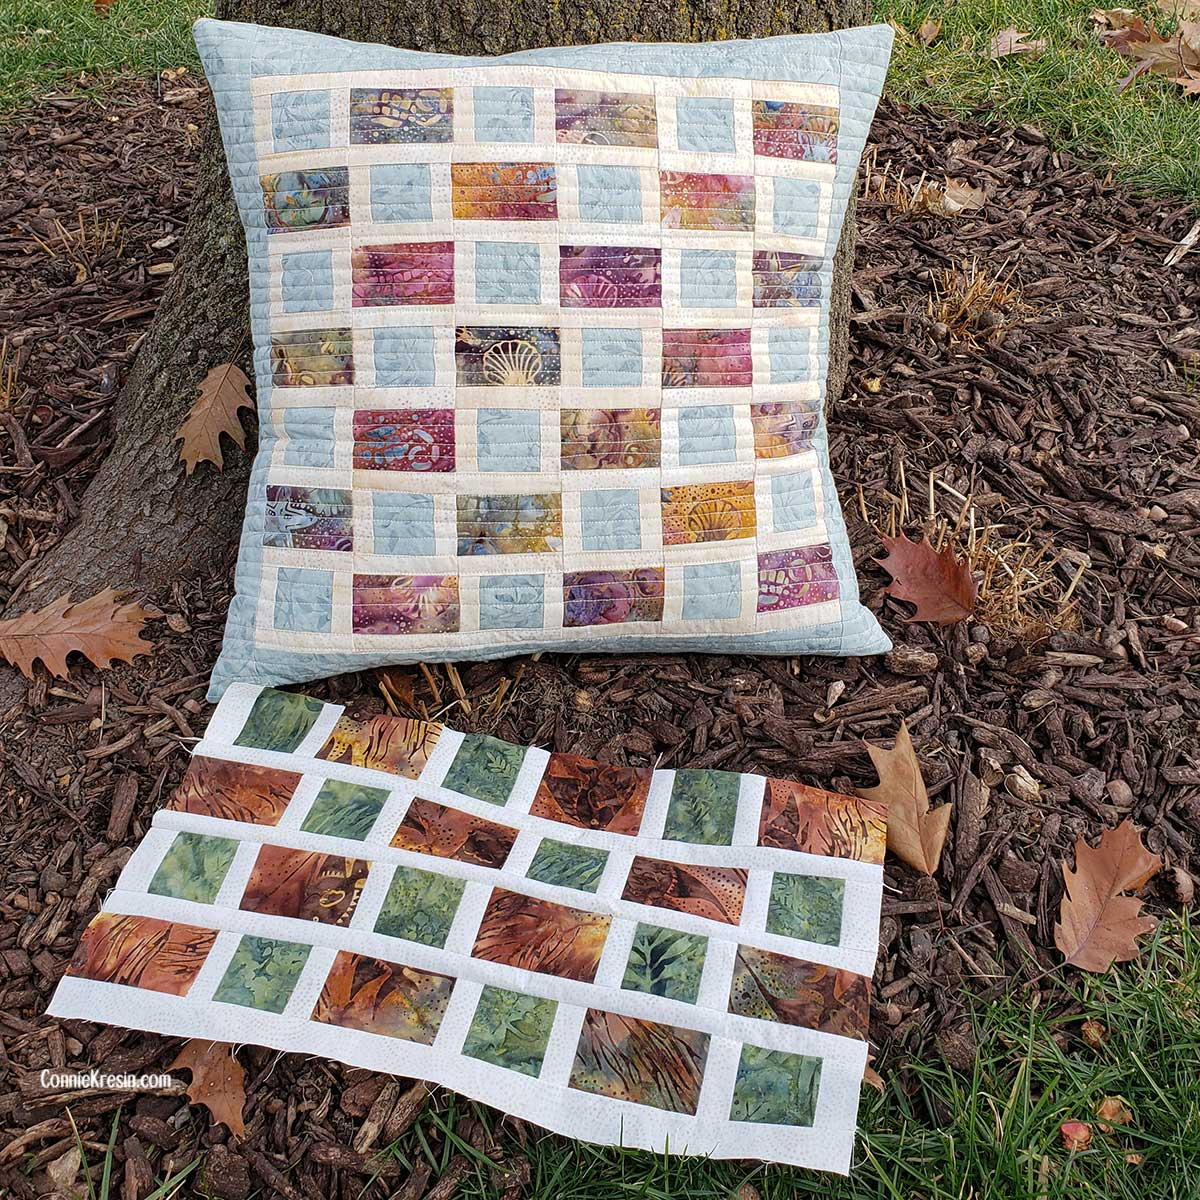 Remaking the quilt pillow